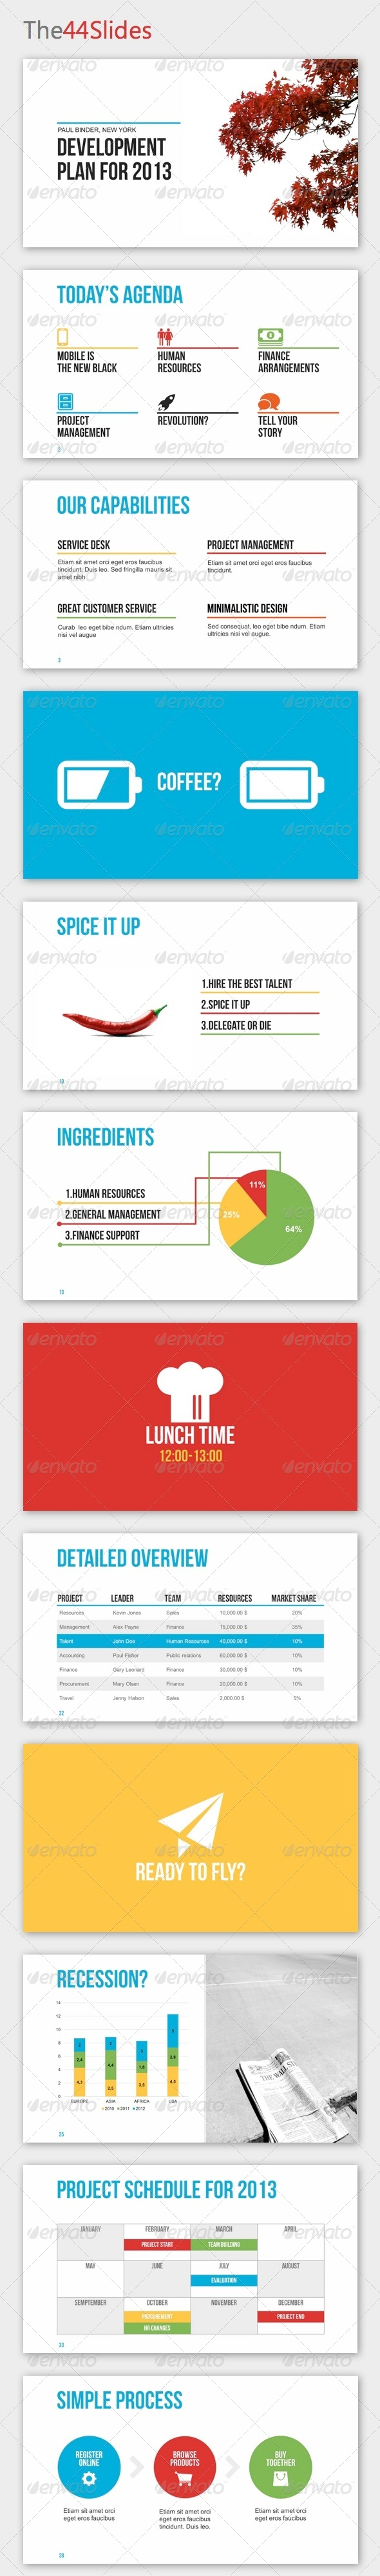 GraphicRiver The44Slides Powerpoint Template 4085888